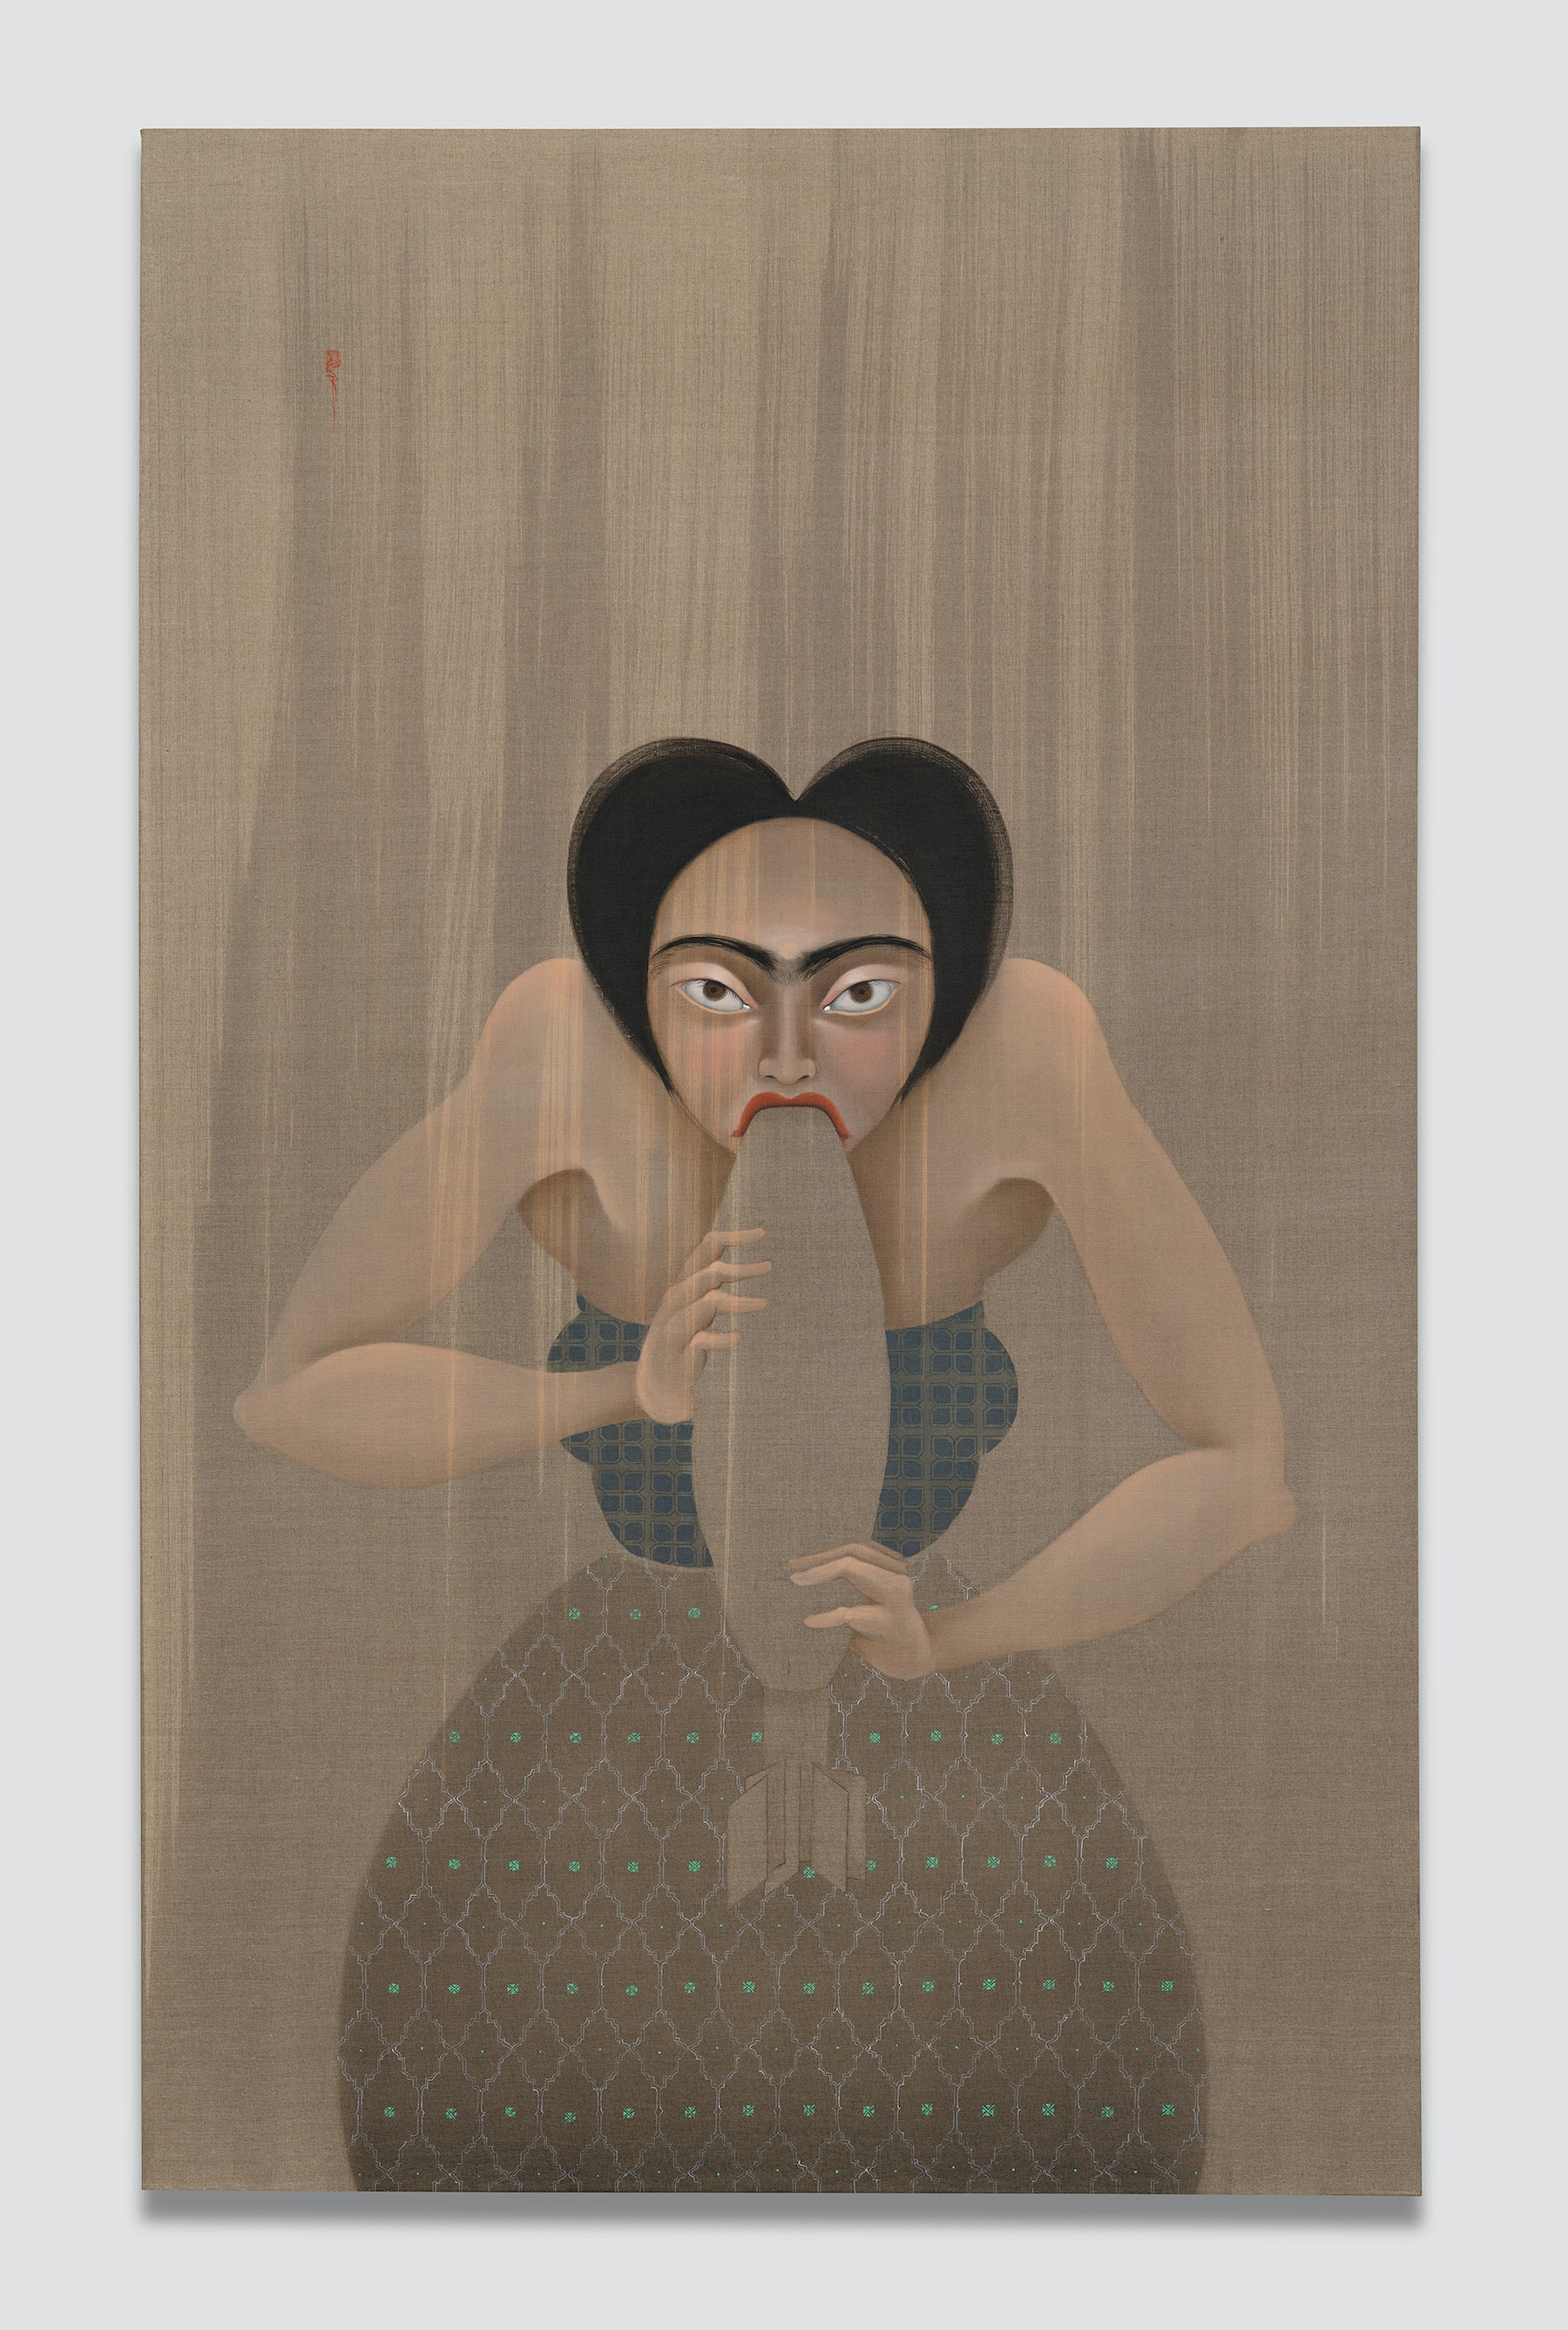 """Hayv Kahraman """"Say Aah,"""" 2021 Oil on linen 68"""" x 42"""" [HxW] (172.72 x 106.68 cm) Inventory #KAR194 Courtesy of the artist and Vielmetter Los Angeles Photo credit: Jeff Mclane"""